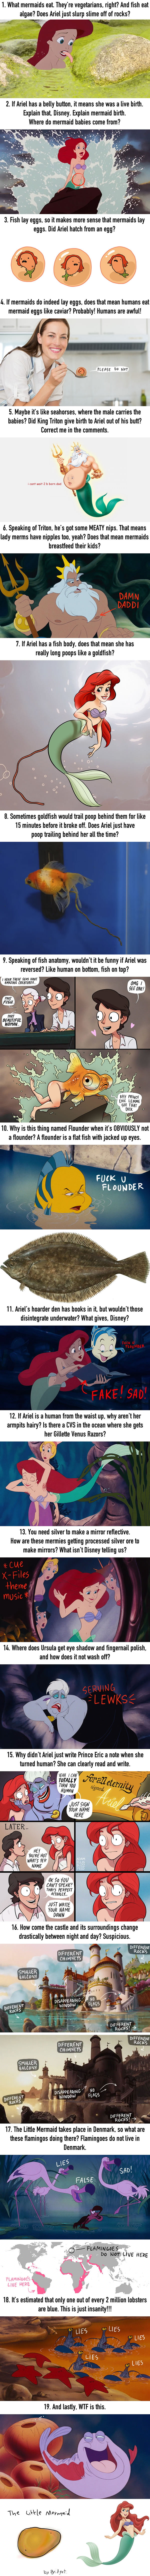 """19 Questions After Watching """"The Little Mermaid"""" For The First Time As An Adult"""